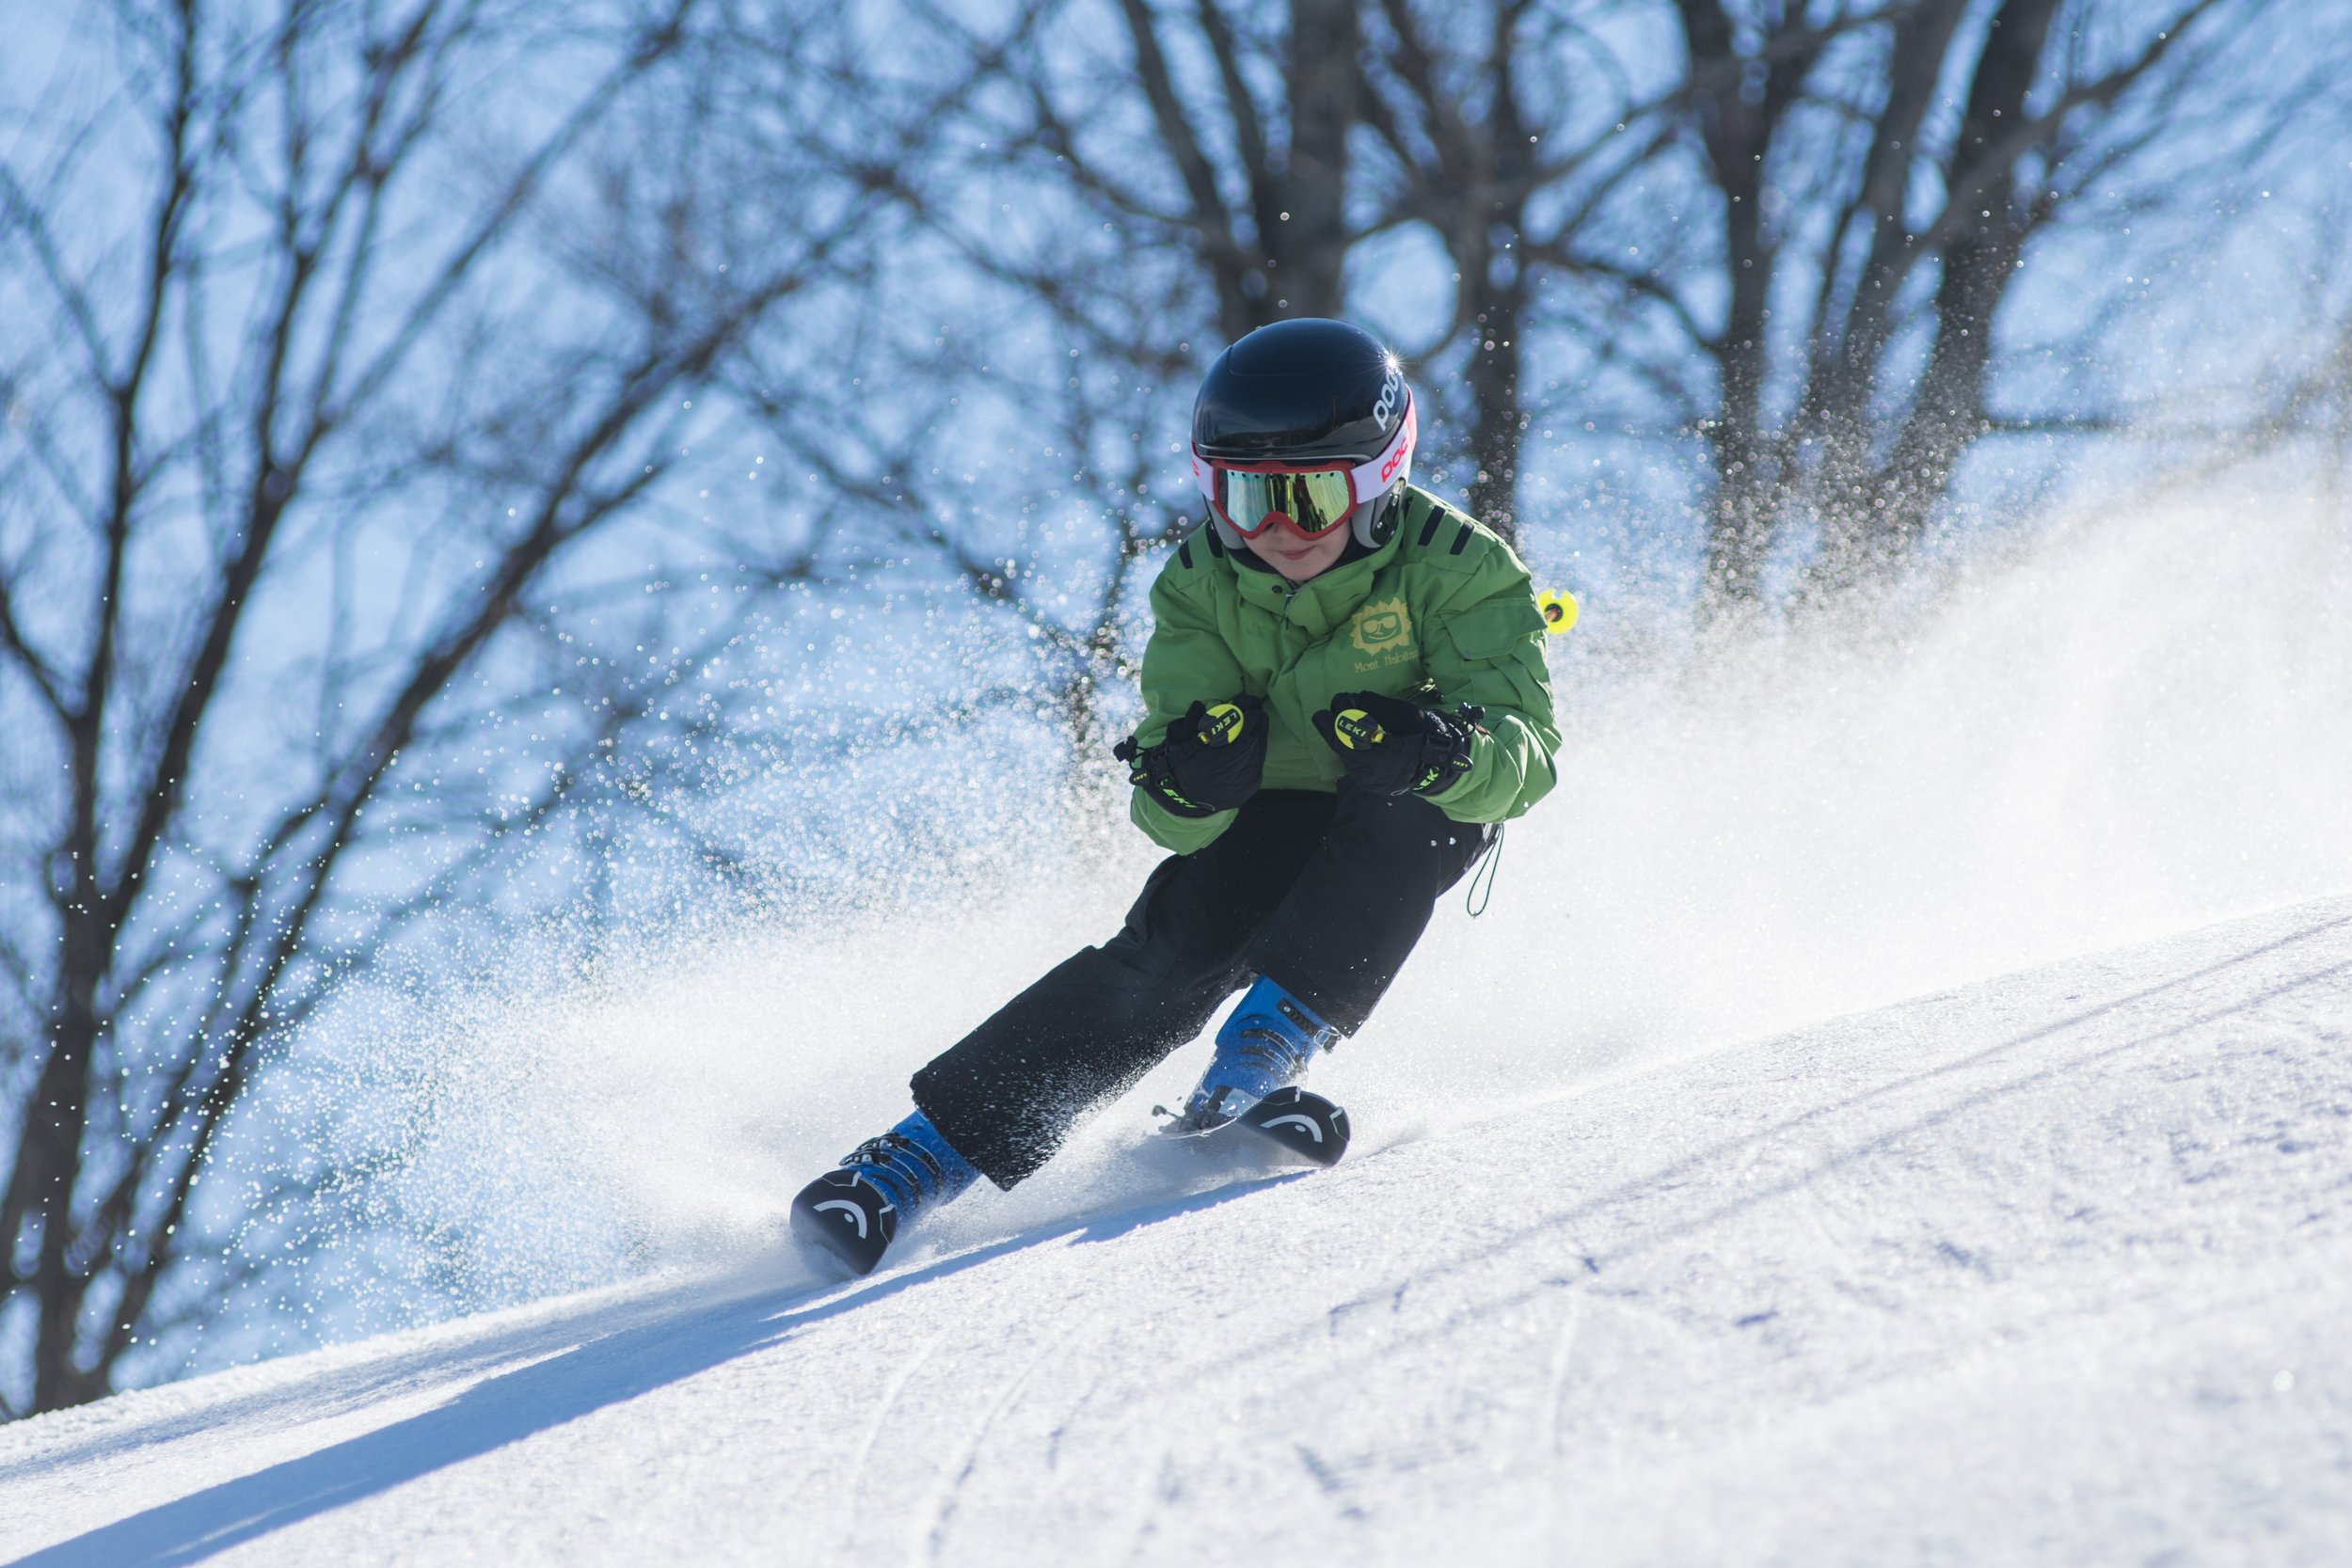 How to get fit for skiing and snowboarding - So it's awesome